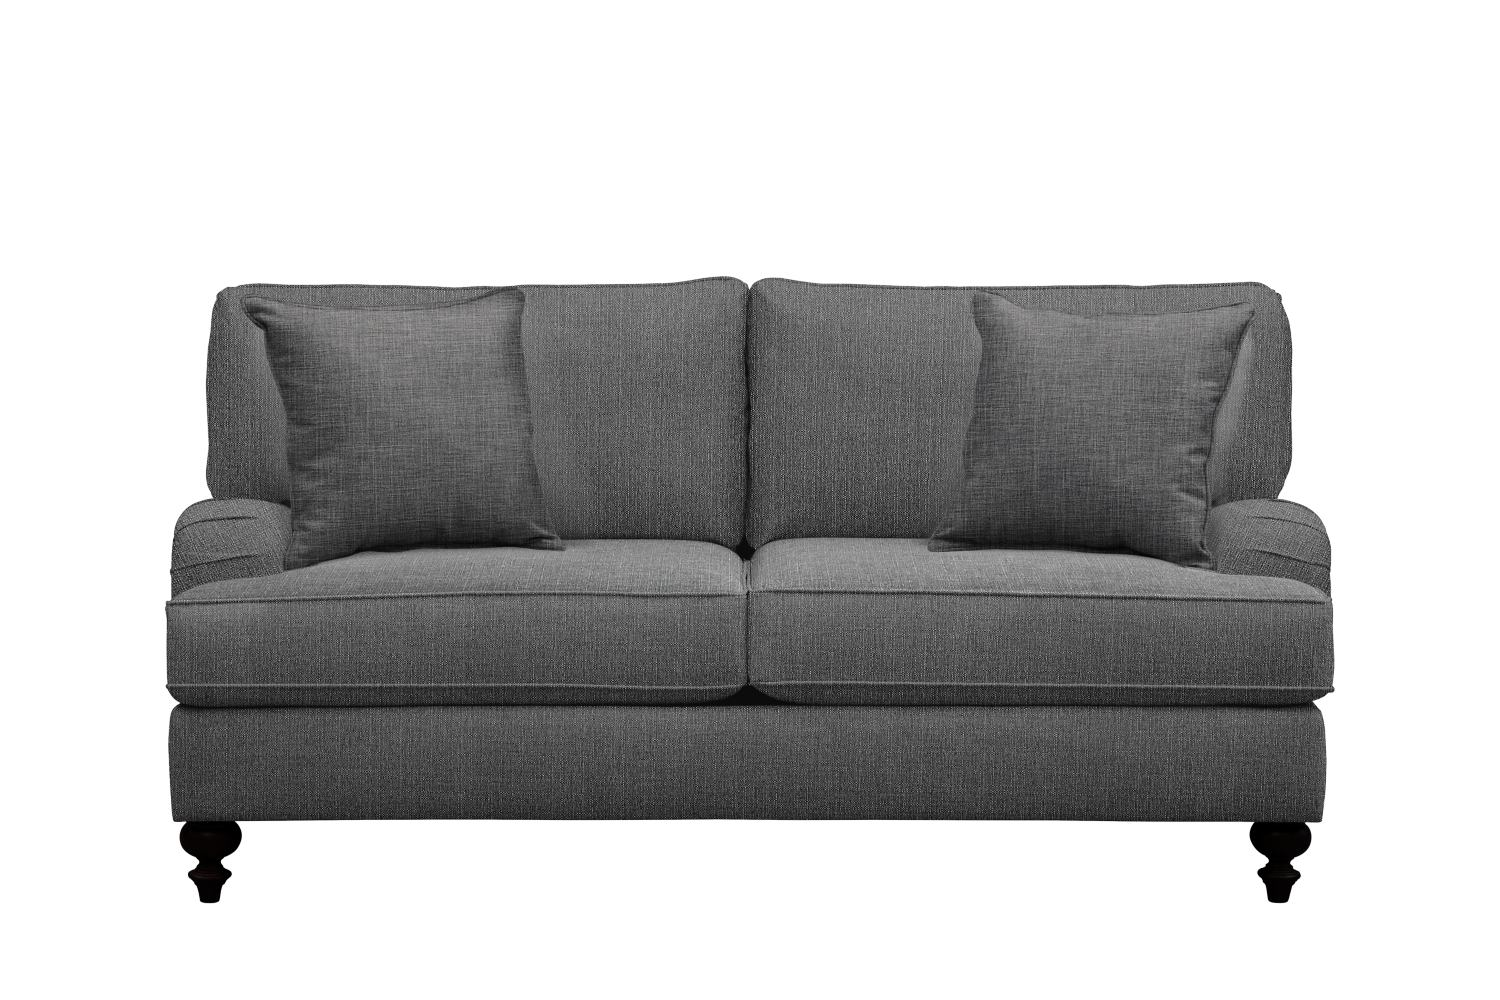 "Living Room Furniture - Avery English Arm Sofa 74"" Depalma Charcoal w/ Depalma Charcoal Pillow"